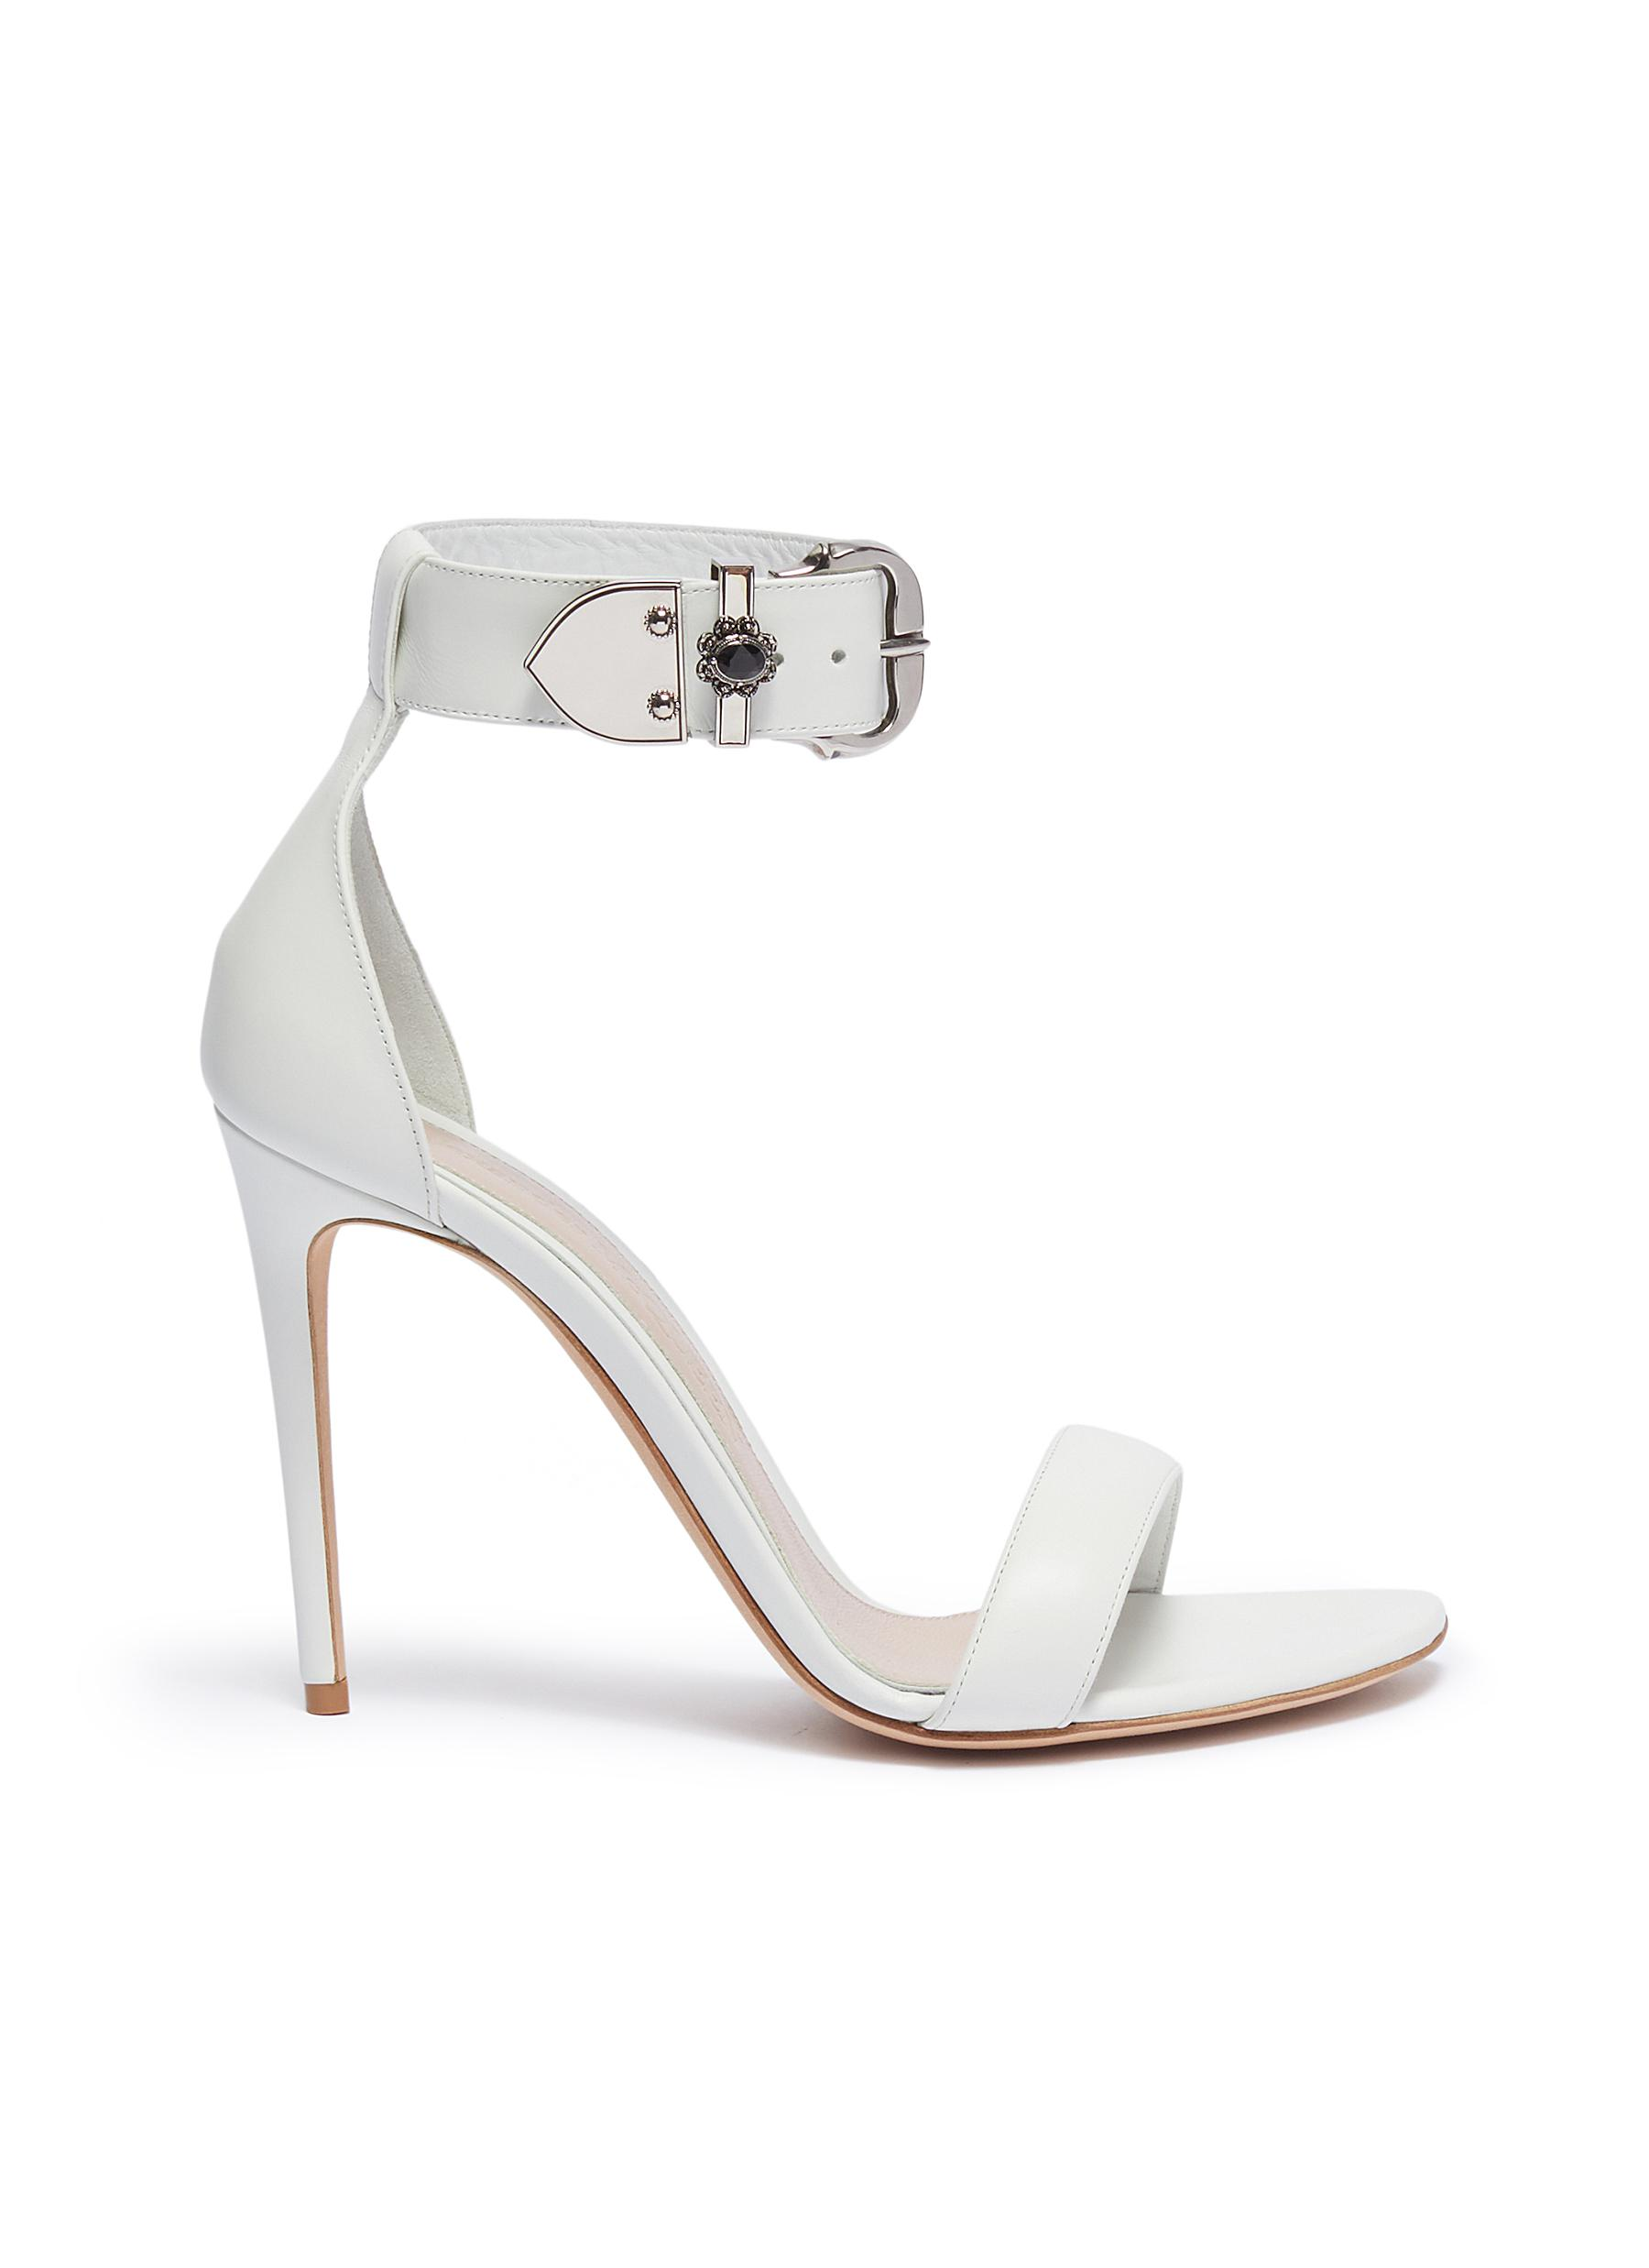 Jewelled buckle ankle strap leather sandals by Alexander Mcqueen